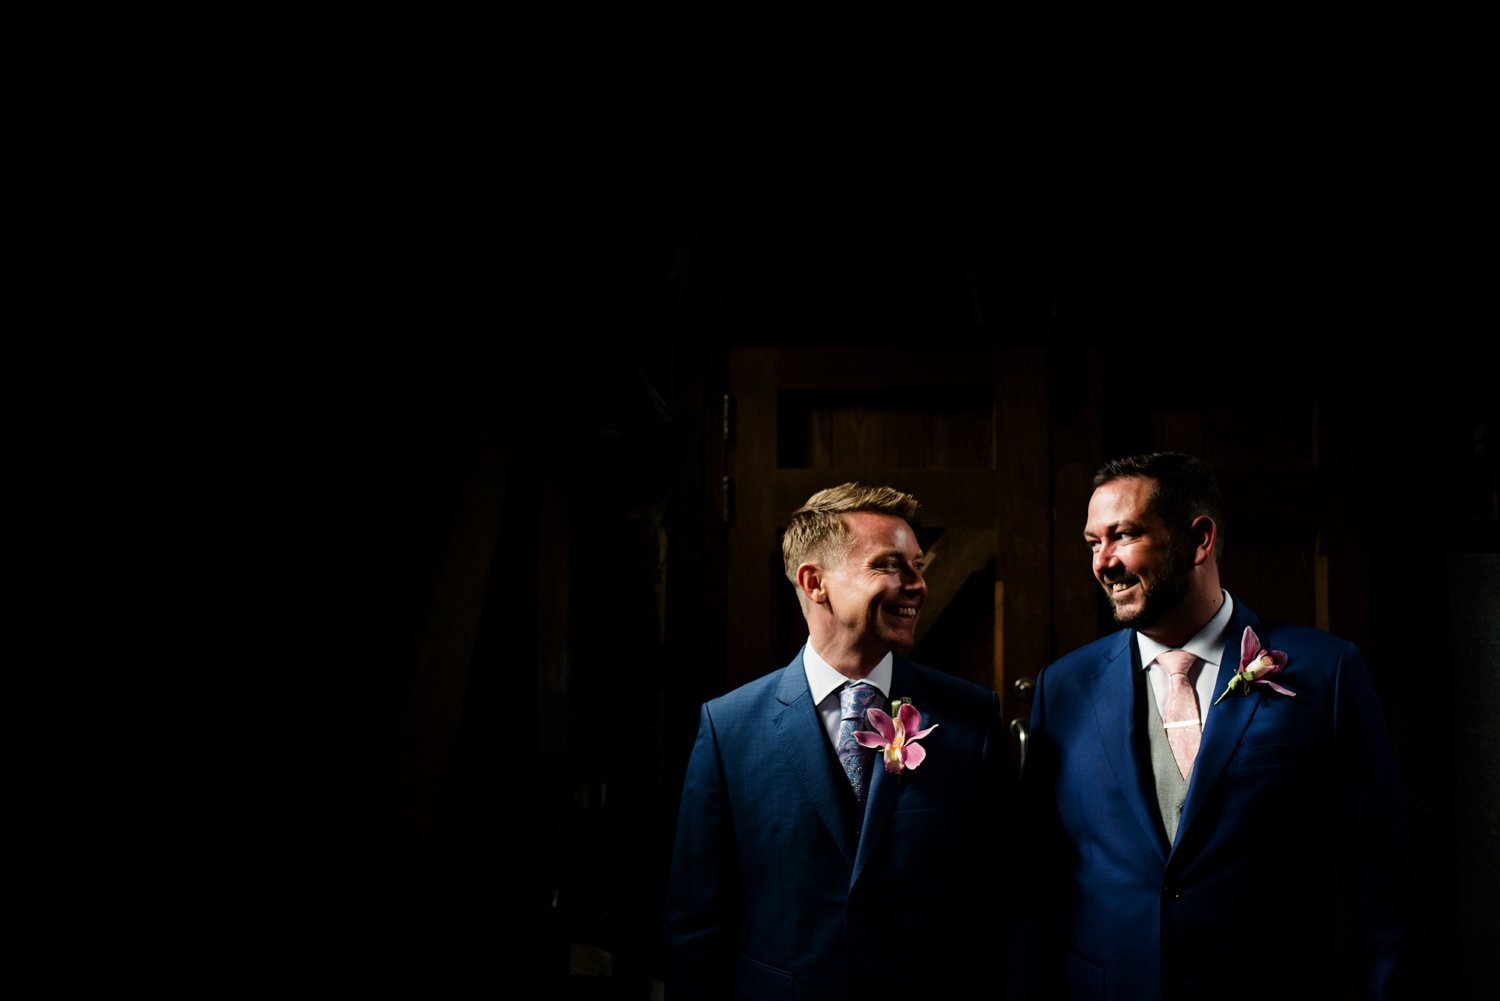 st-stephens-rosslyn-hill-wedding-photography-20